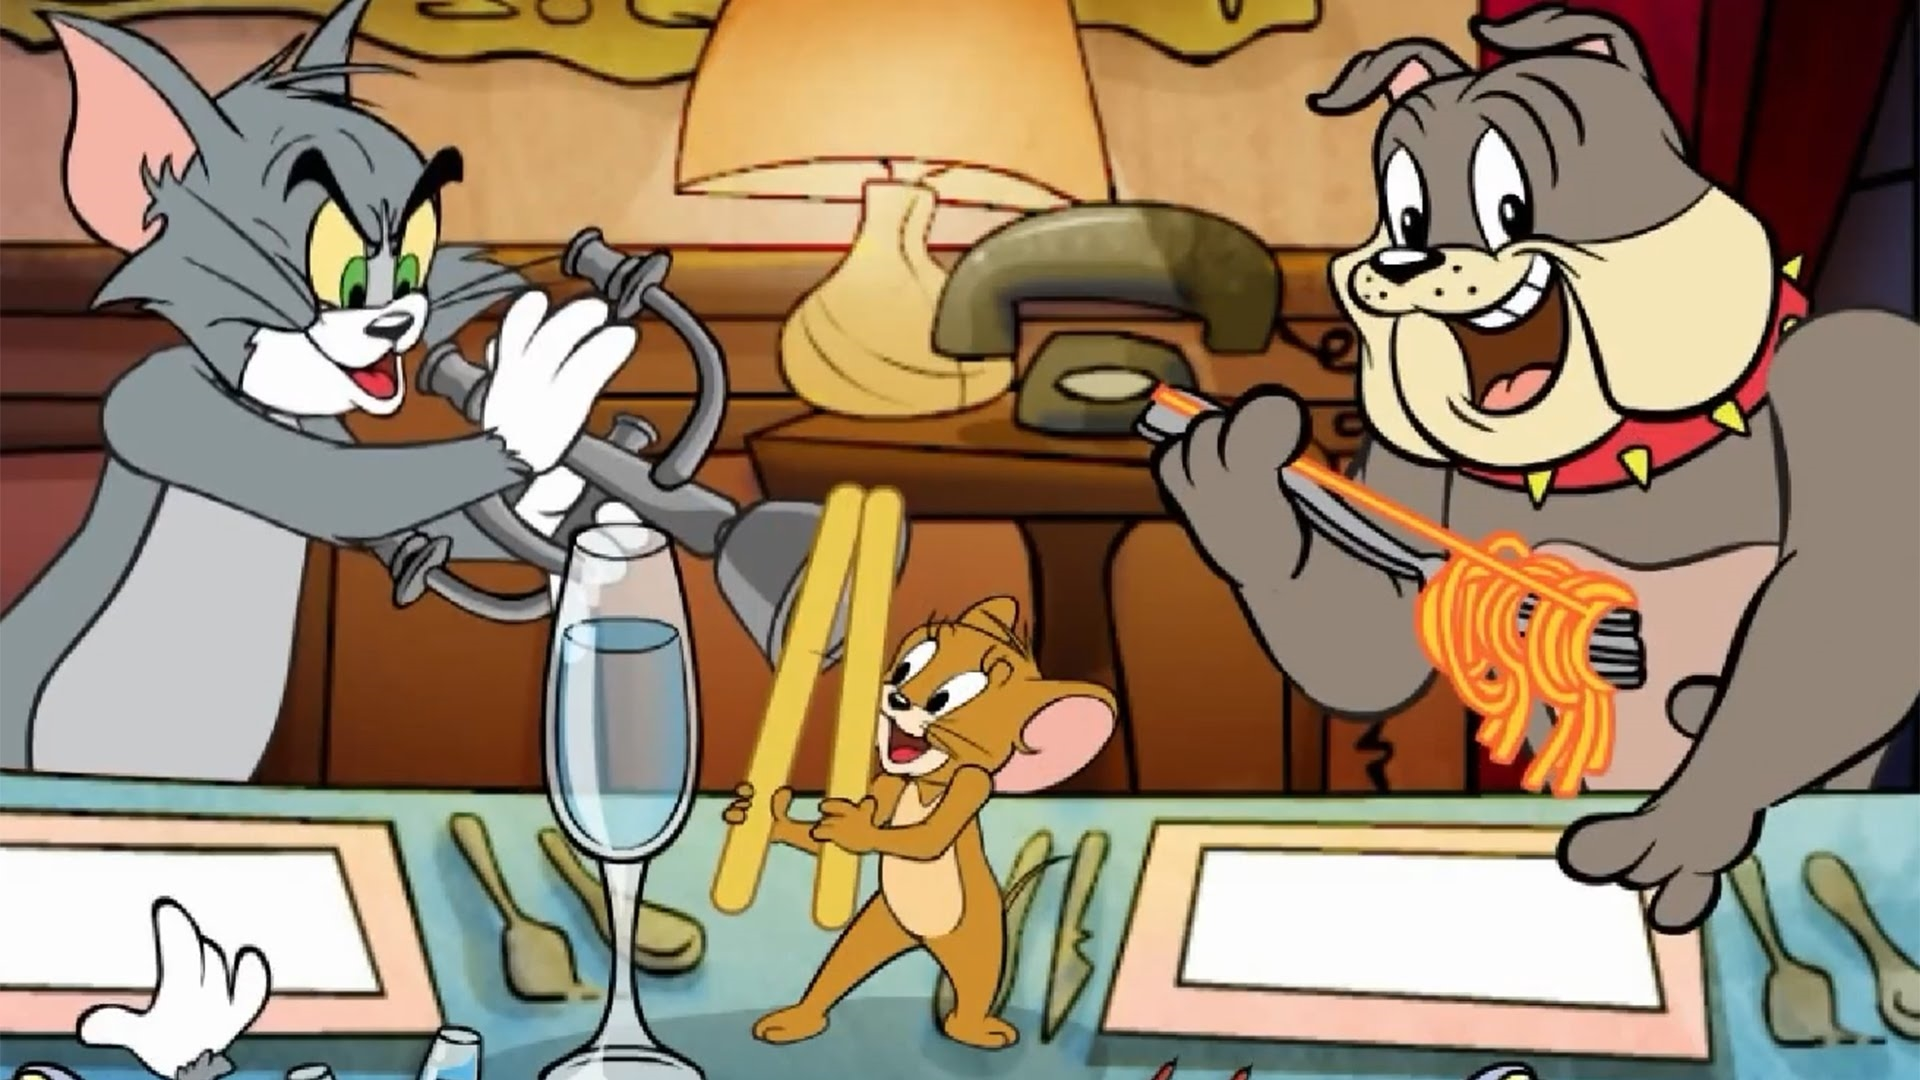 tom and jerry bruce free hd desktop wallpaper.jpg